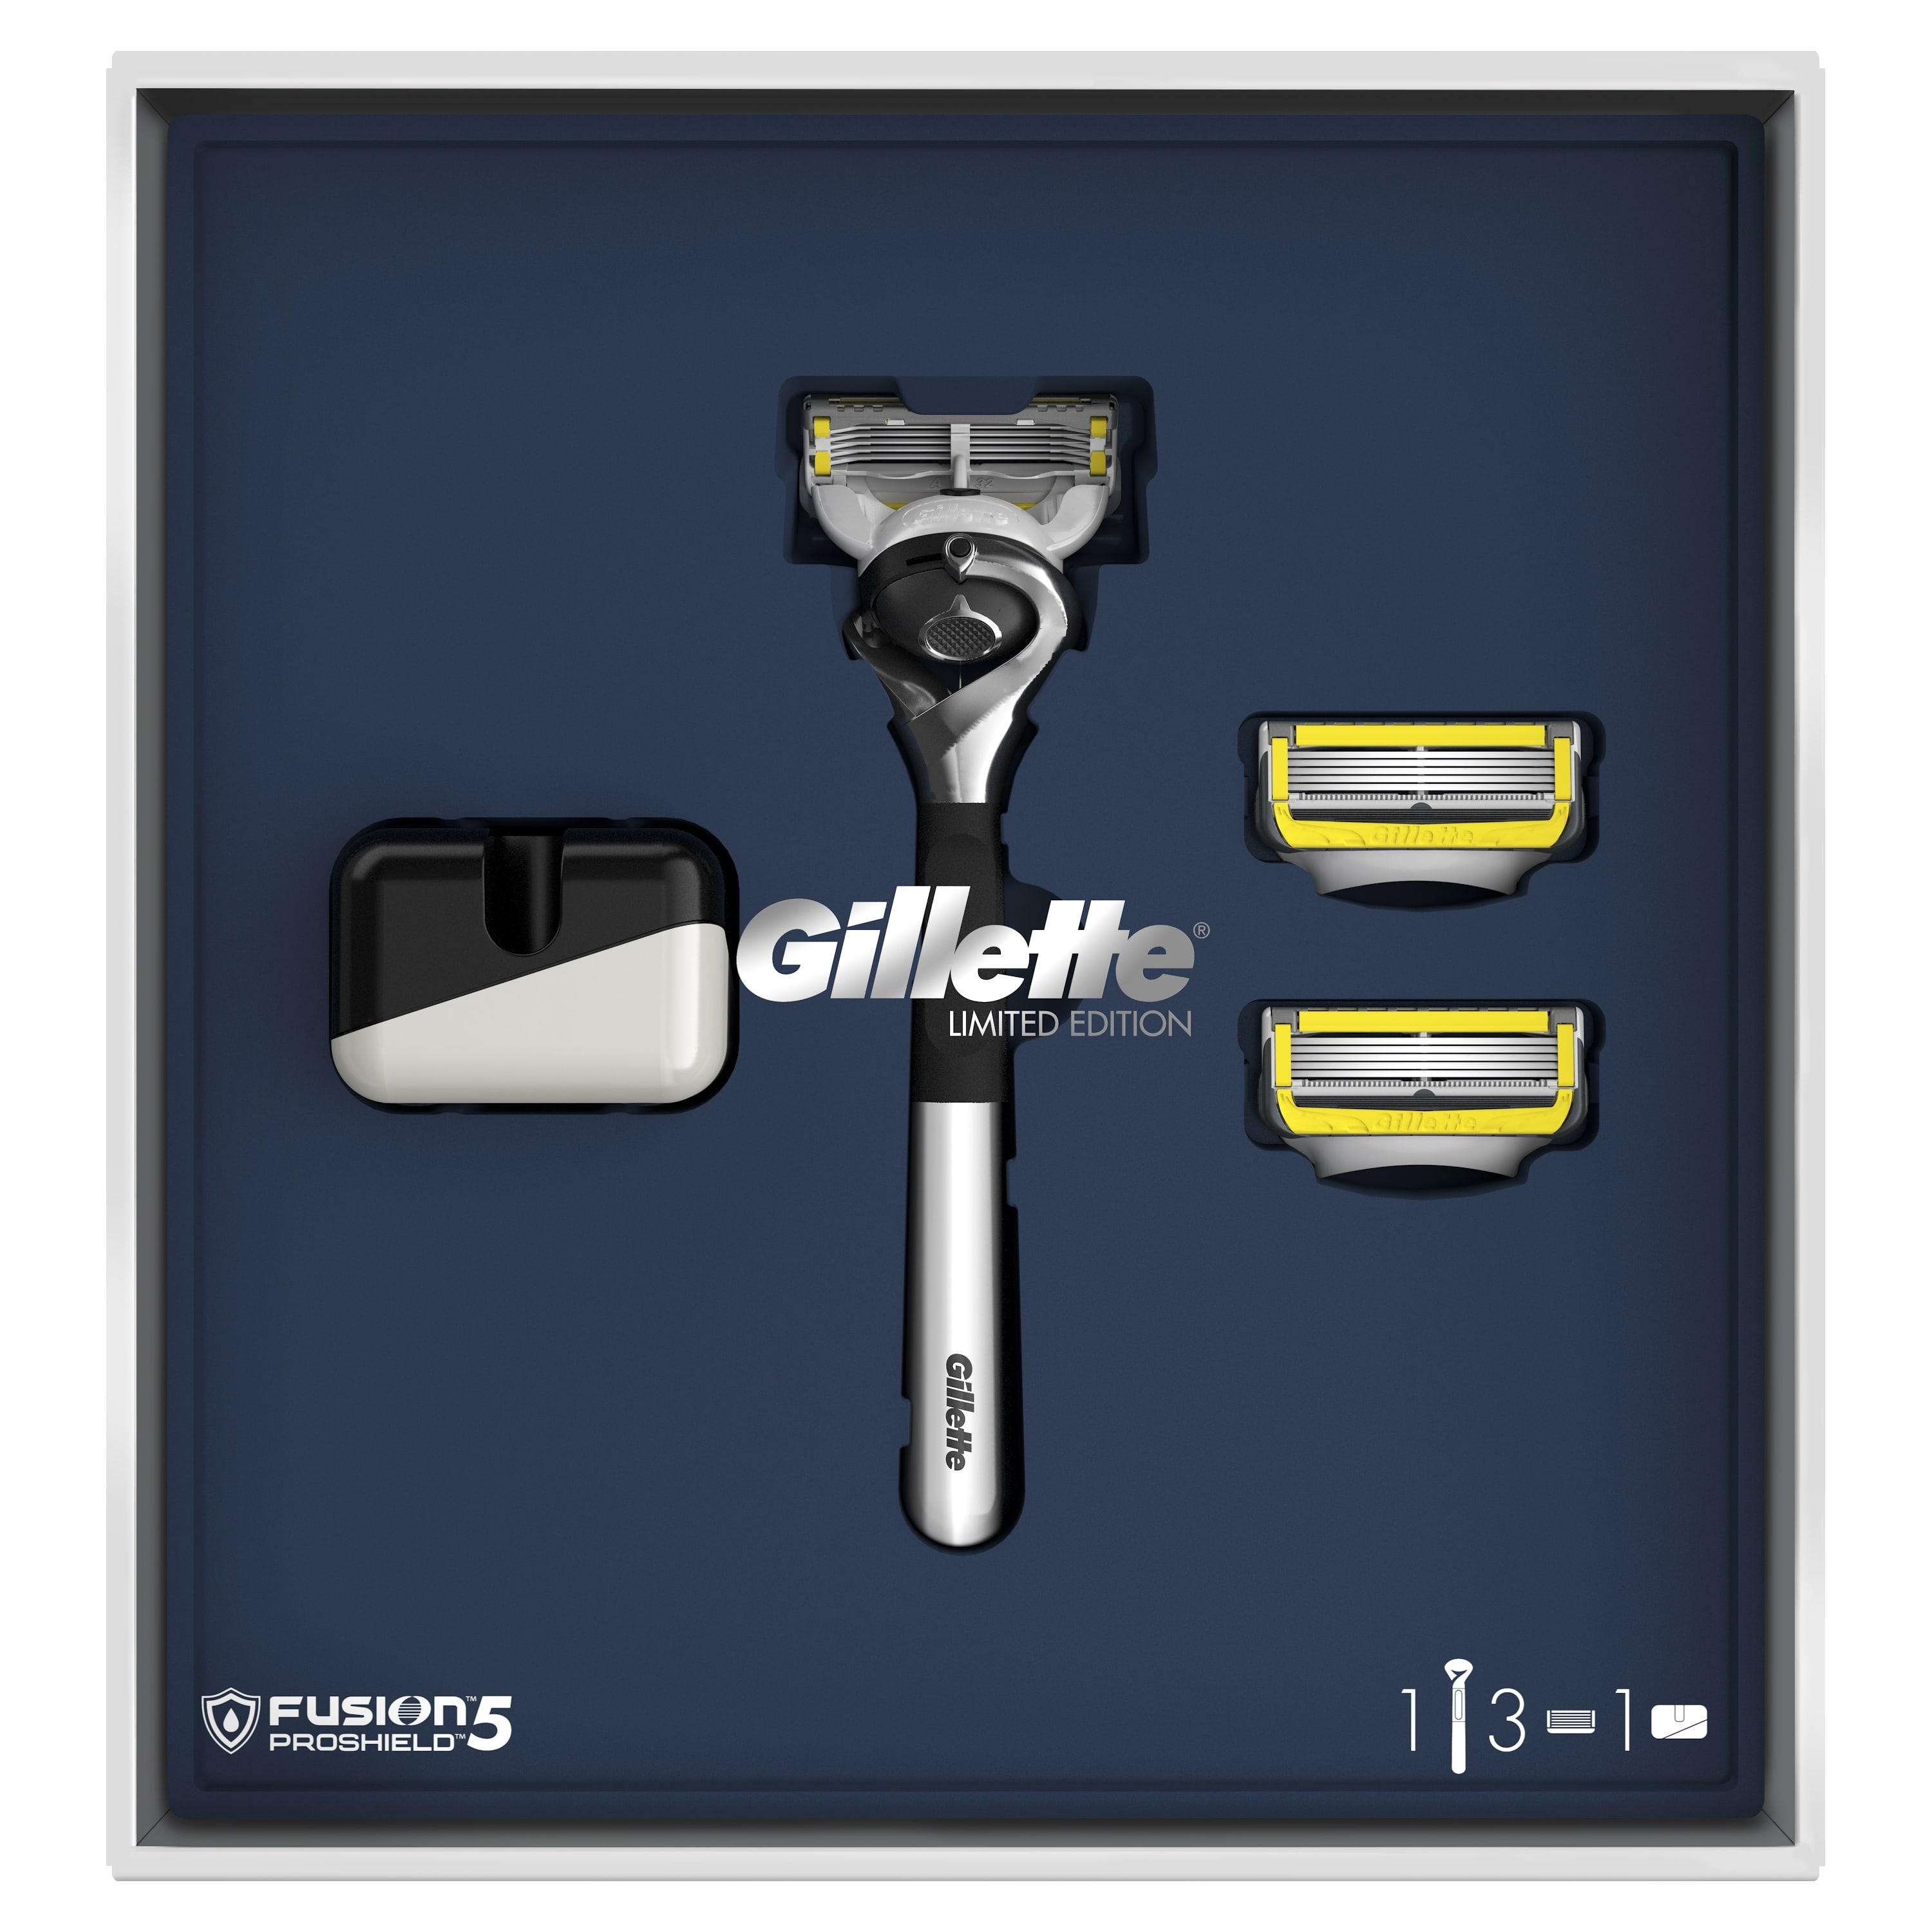 Gillette Fusion5 ProShield Gift Set Limited Edition with Chrome Handle (Razor + 3 Interchangeable Cassettes + Stand) цена